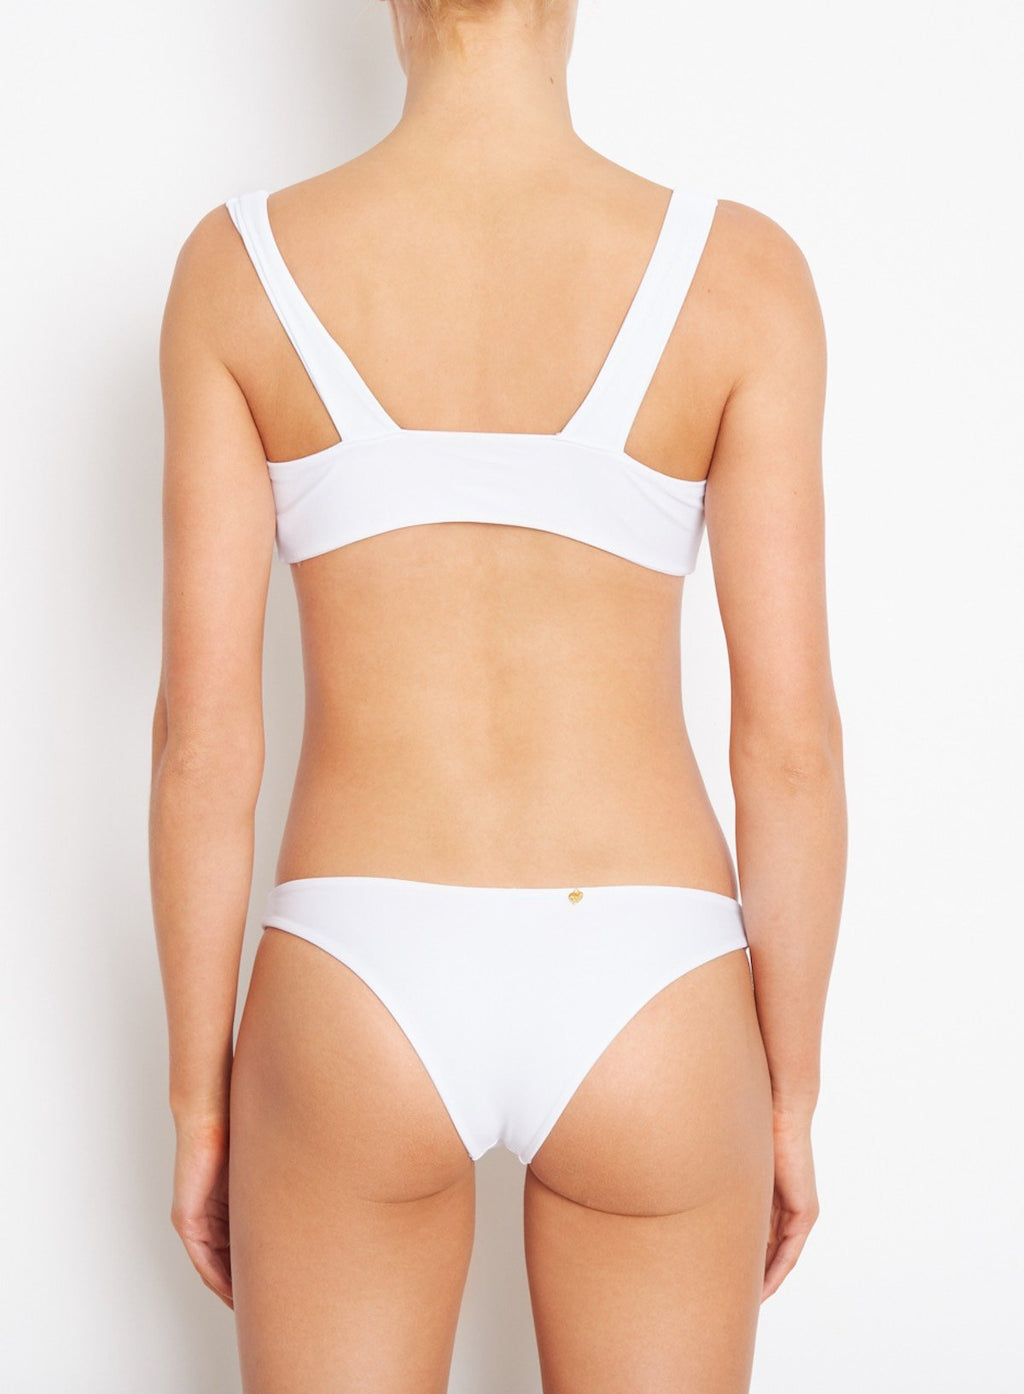 Amore + Sorvete Amore + Sorvete - Bellini Top in White - Nomads Cove